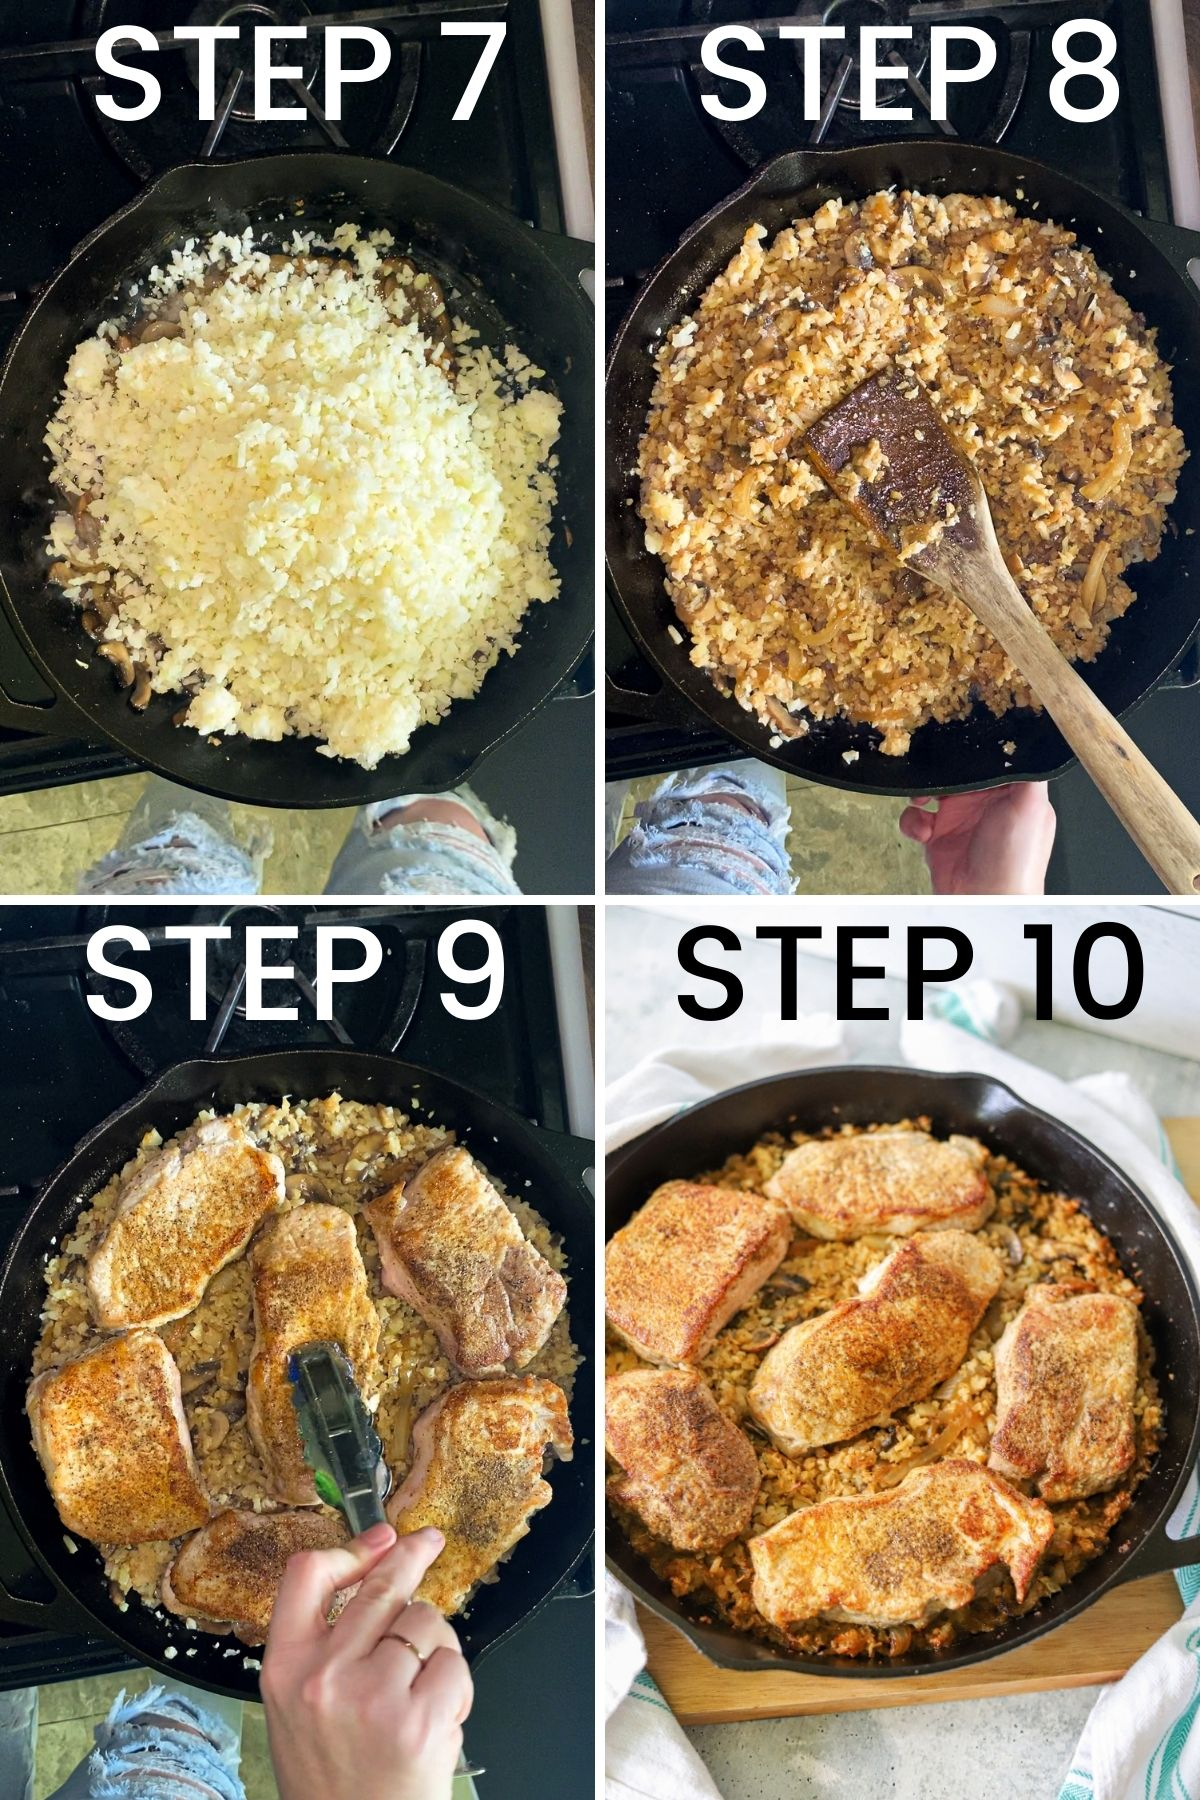 a four image collage showing steps 7, 8, 9, and 10 for following this recipe.